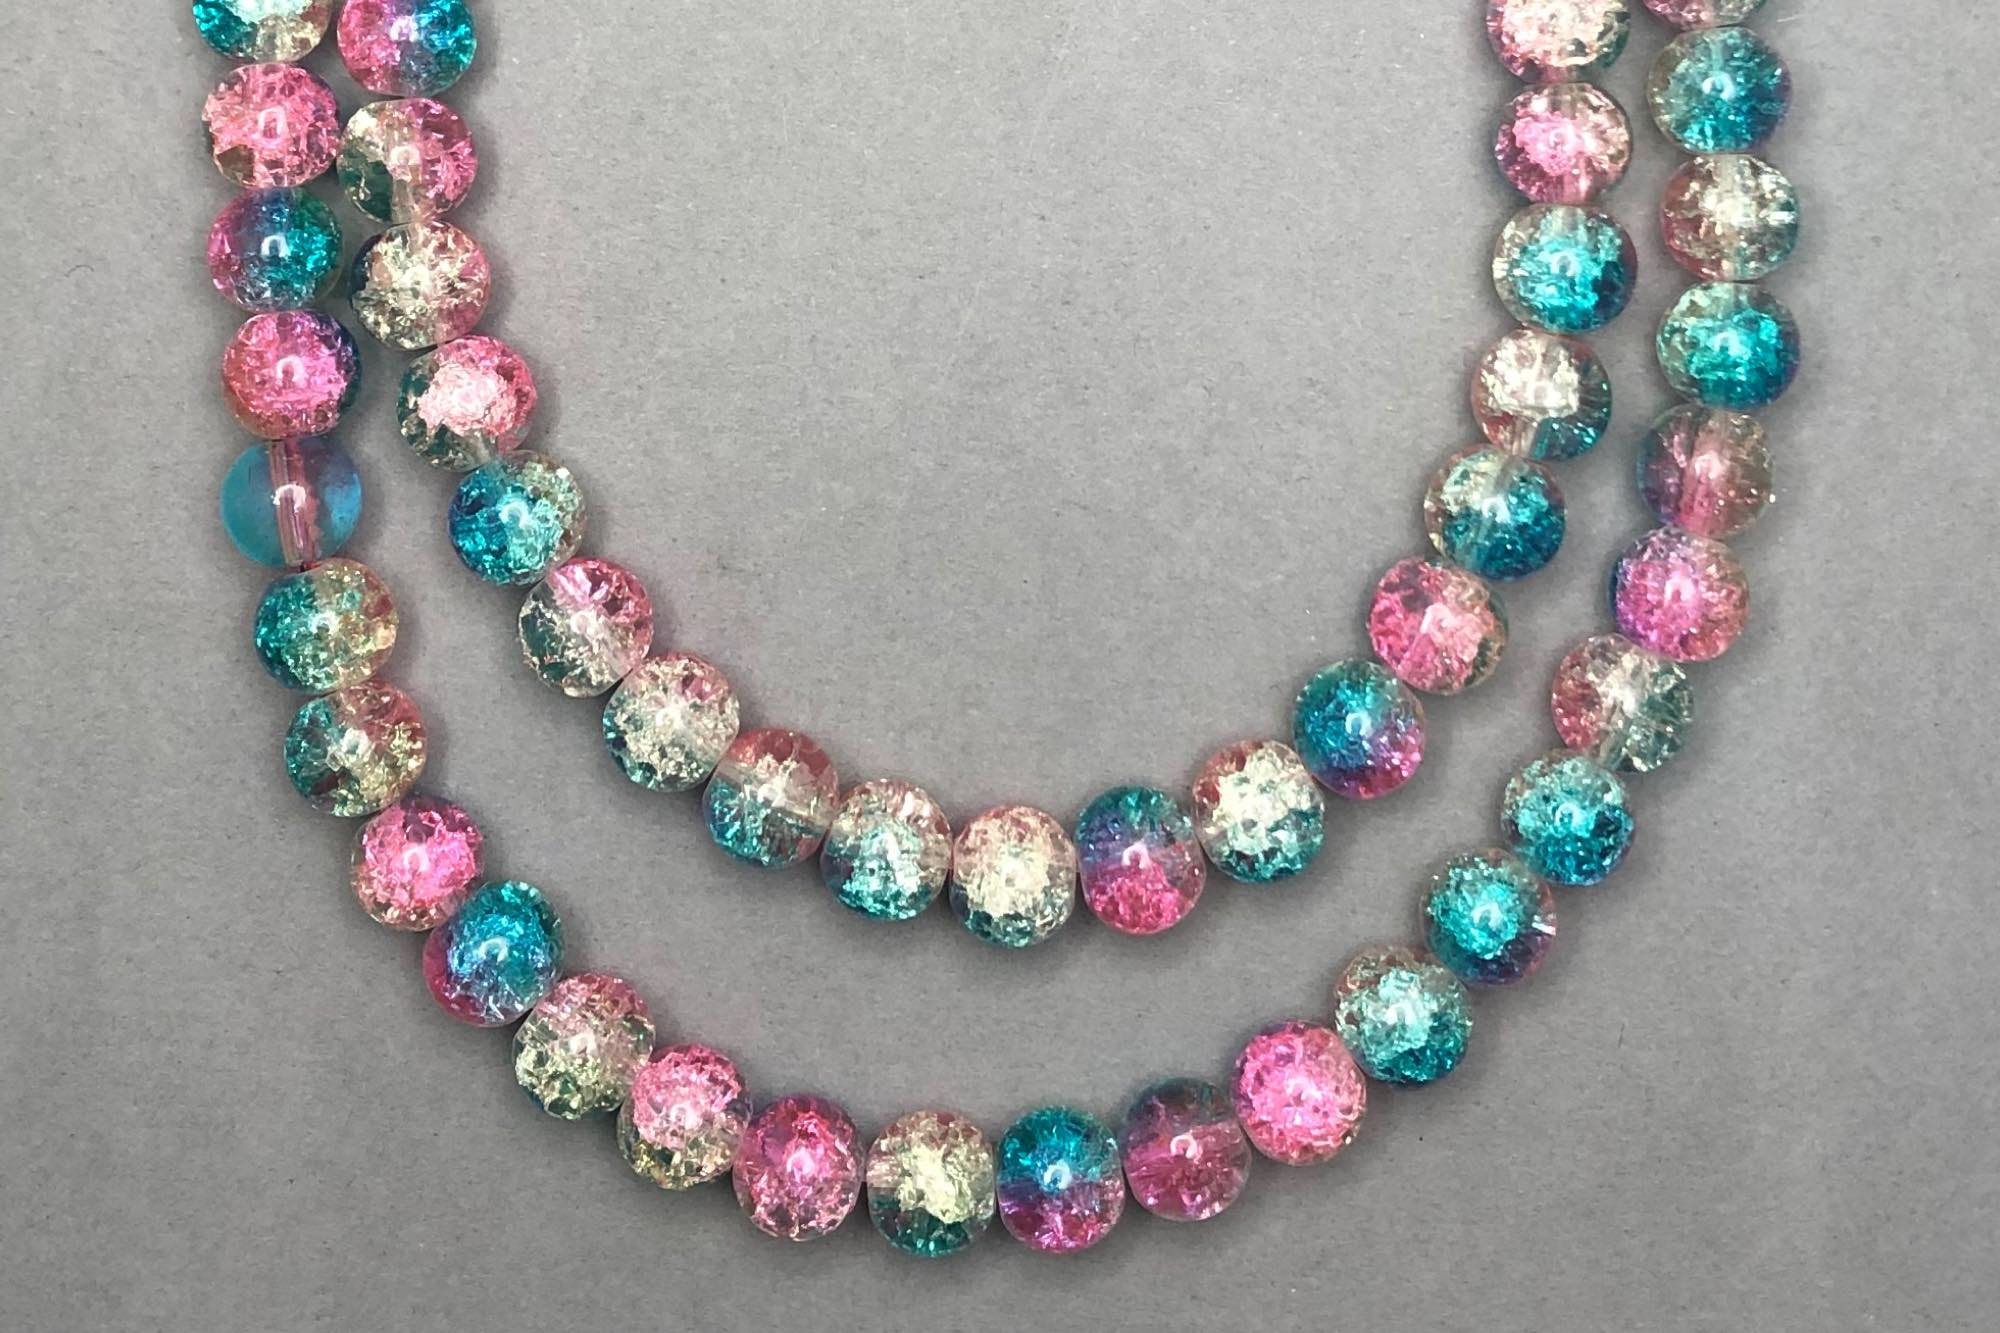 Aqua/Pink/Clear Crackle Glass Beads